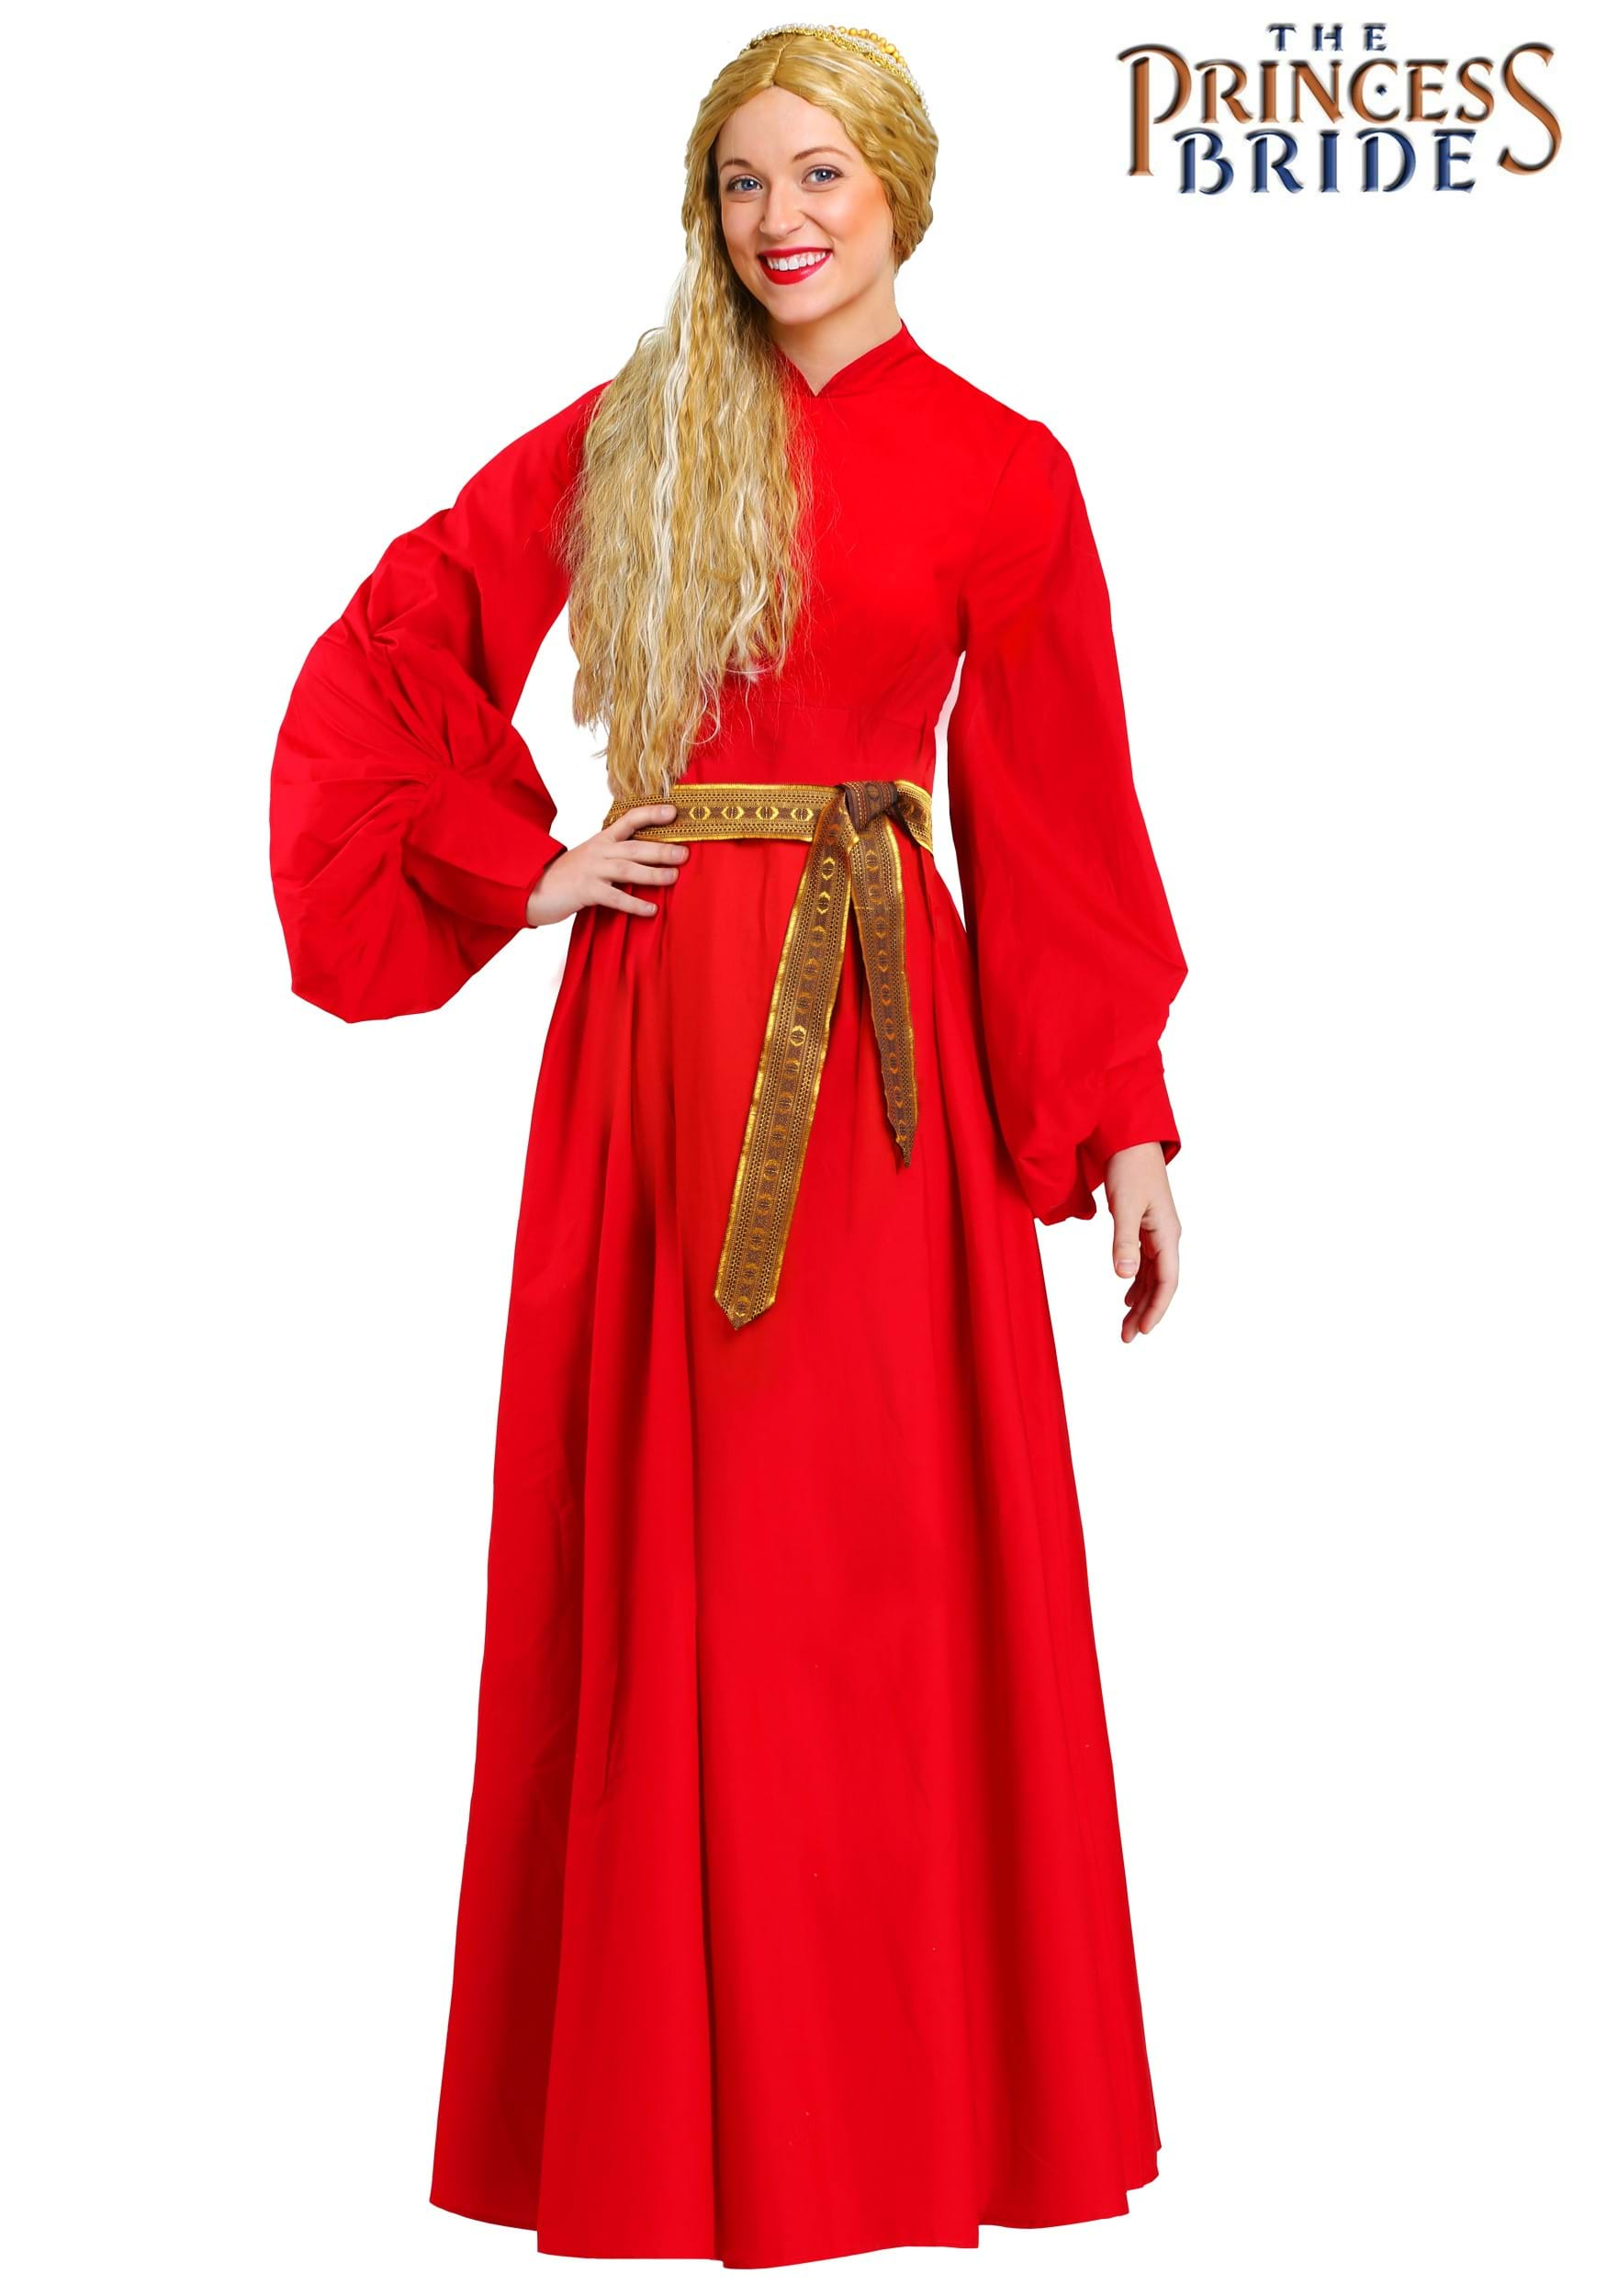 WOMEN'S PRINCESS BRIDE BUTTERCUP PEASANT DRESS COSTUME with red dress and belt